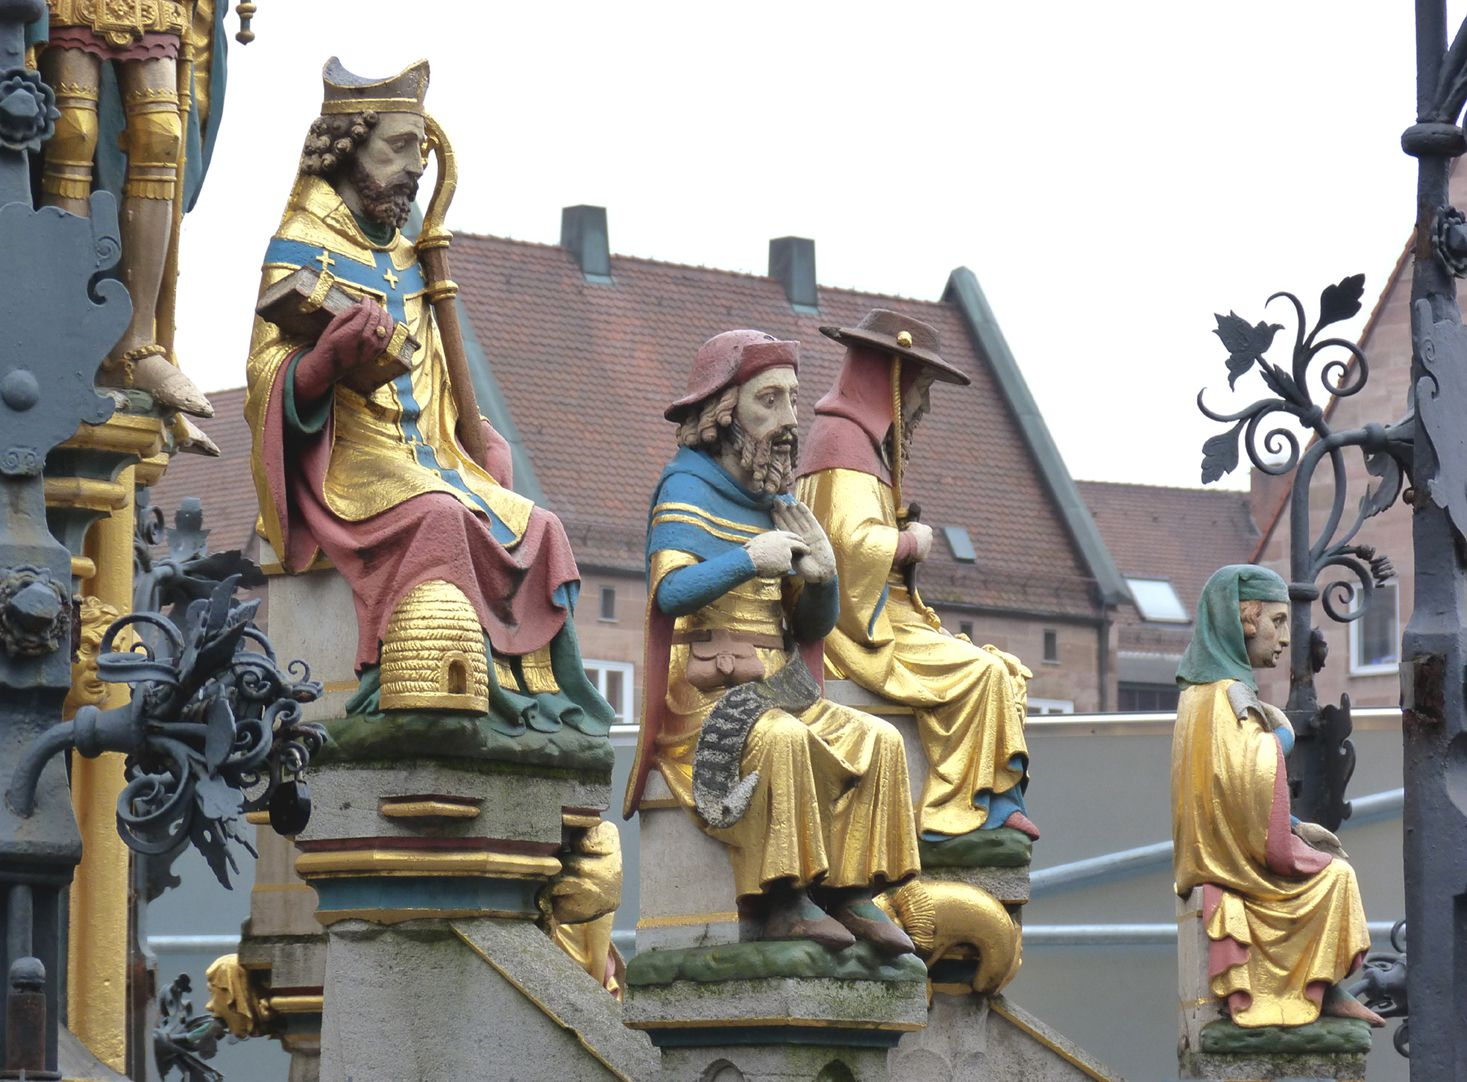 Beautiful fountain Detail, two tiers of figures at the edge of the basin